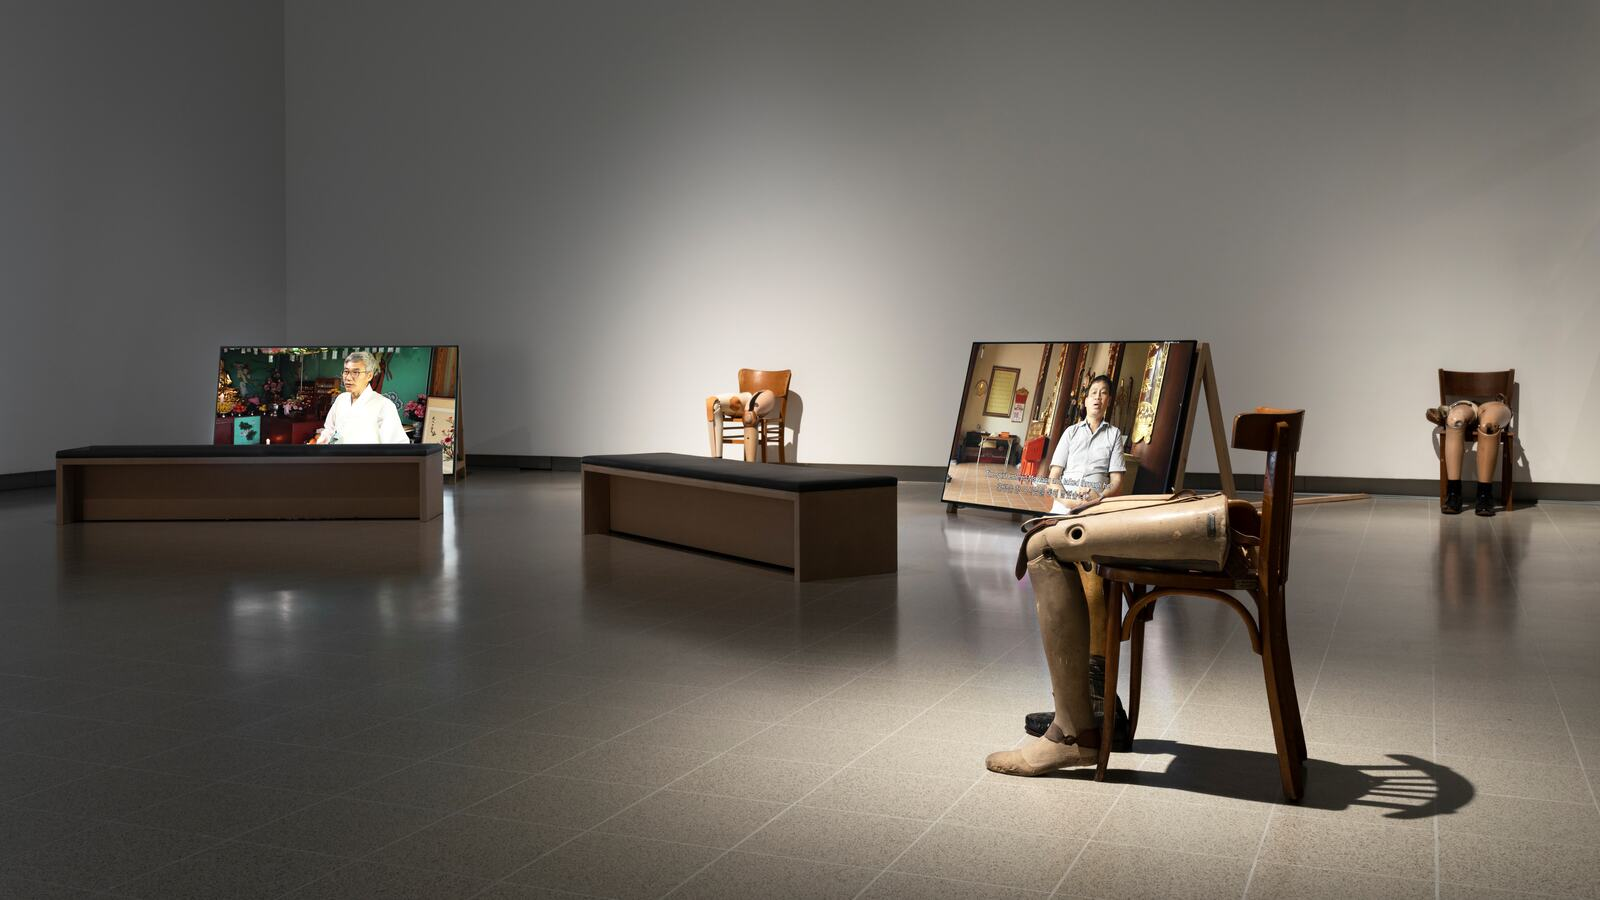 Installation view of Kader Attia: The Museum of Emotion at Hayward Gallery, 2019